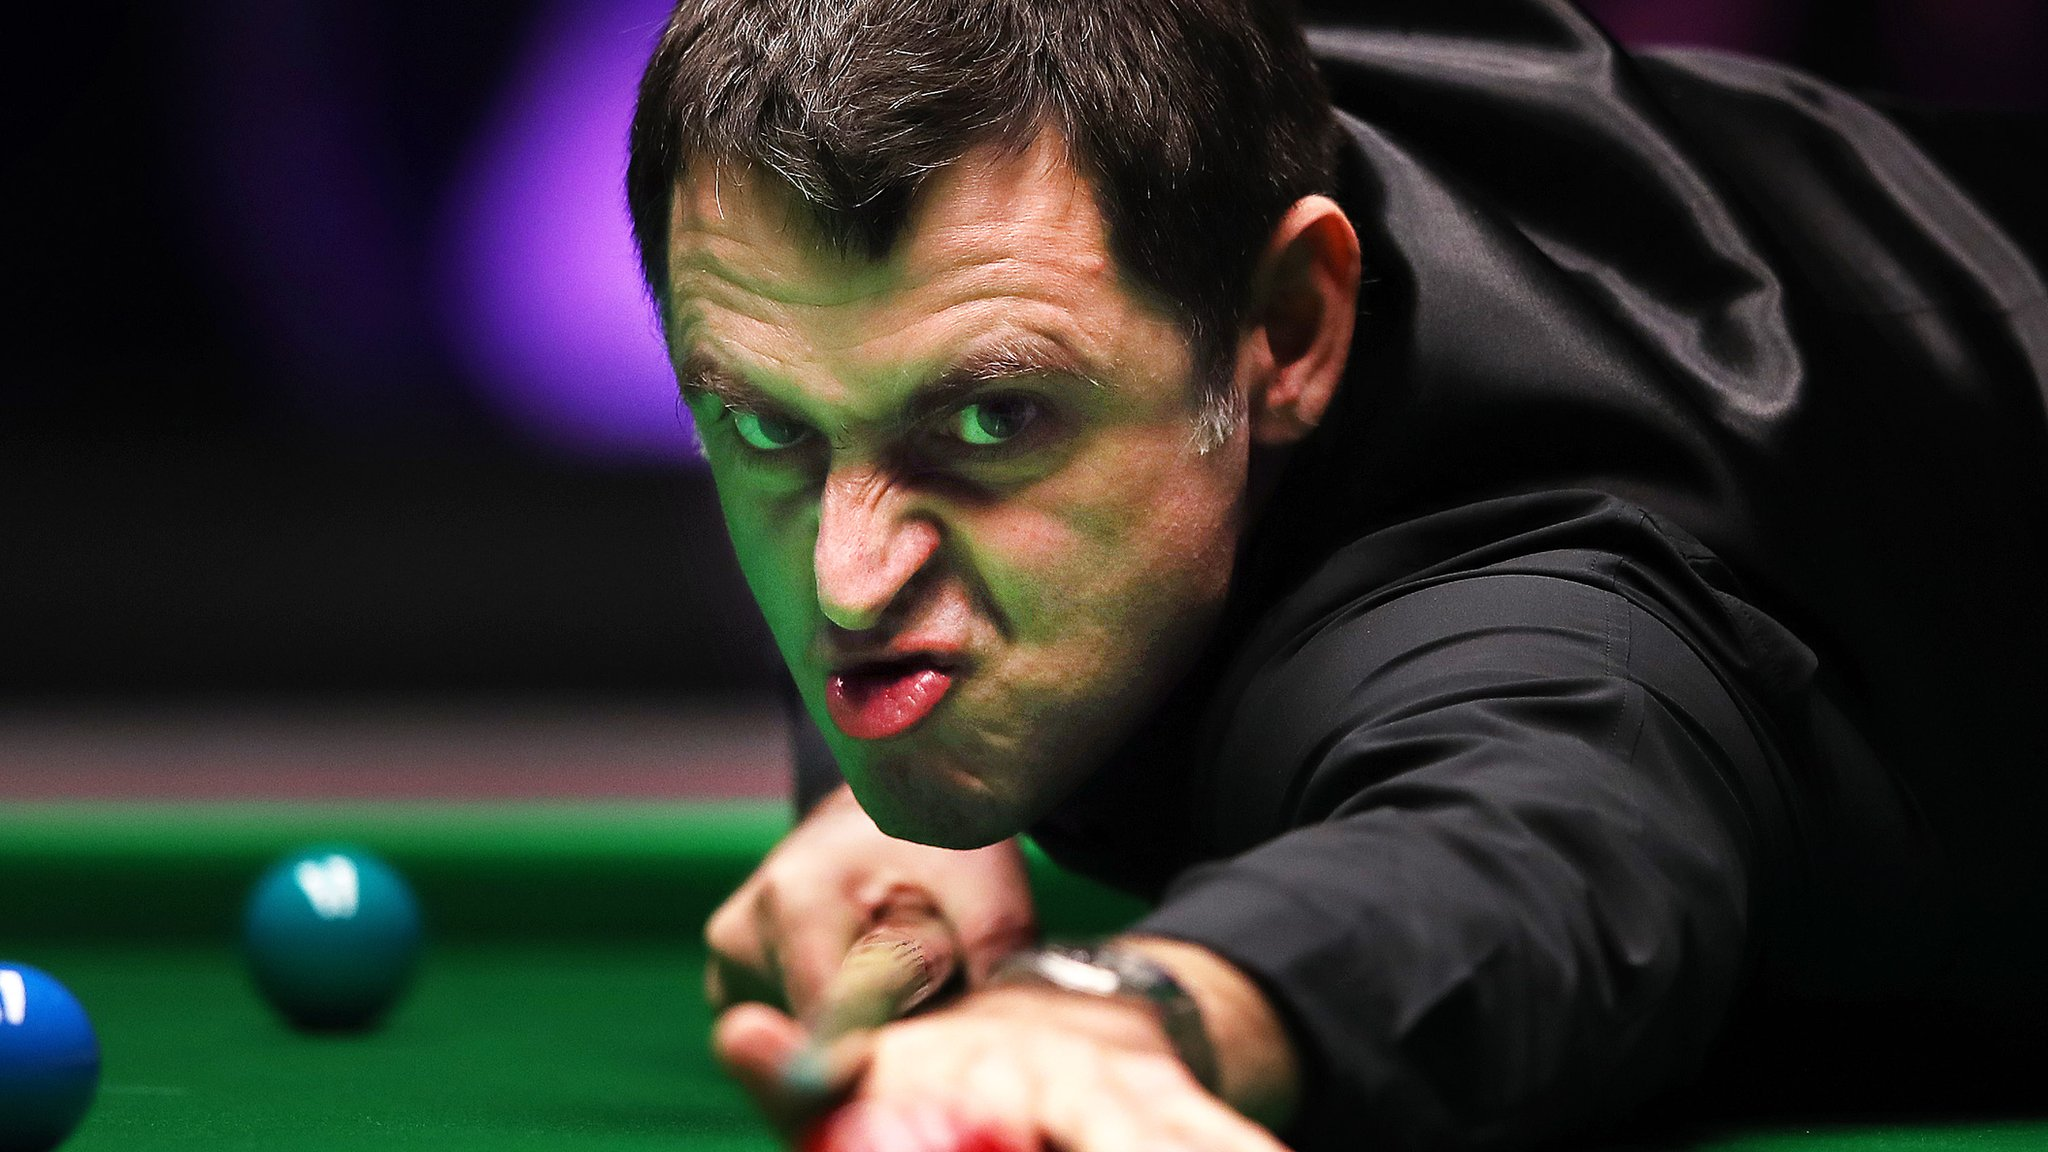 Masters Snooker 2019: O'Sullivan holds off Ding to reach 13th final